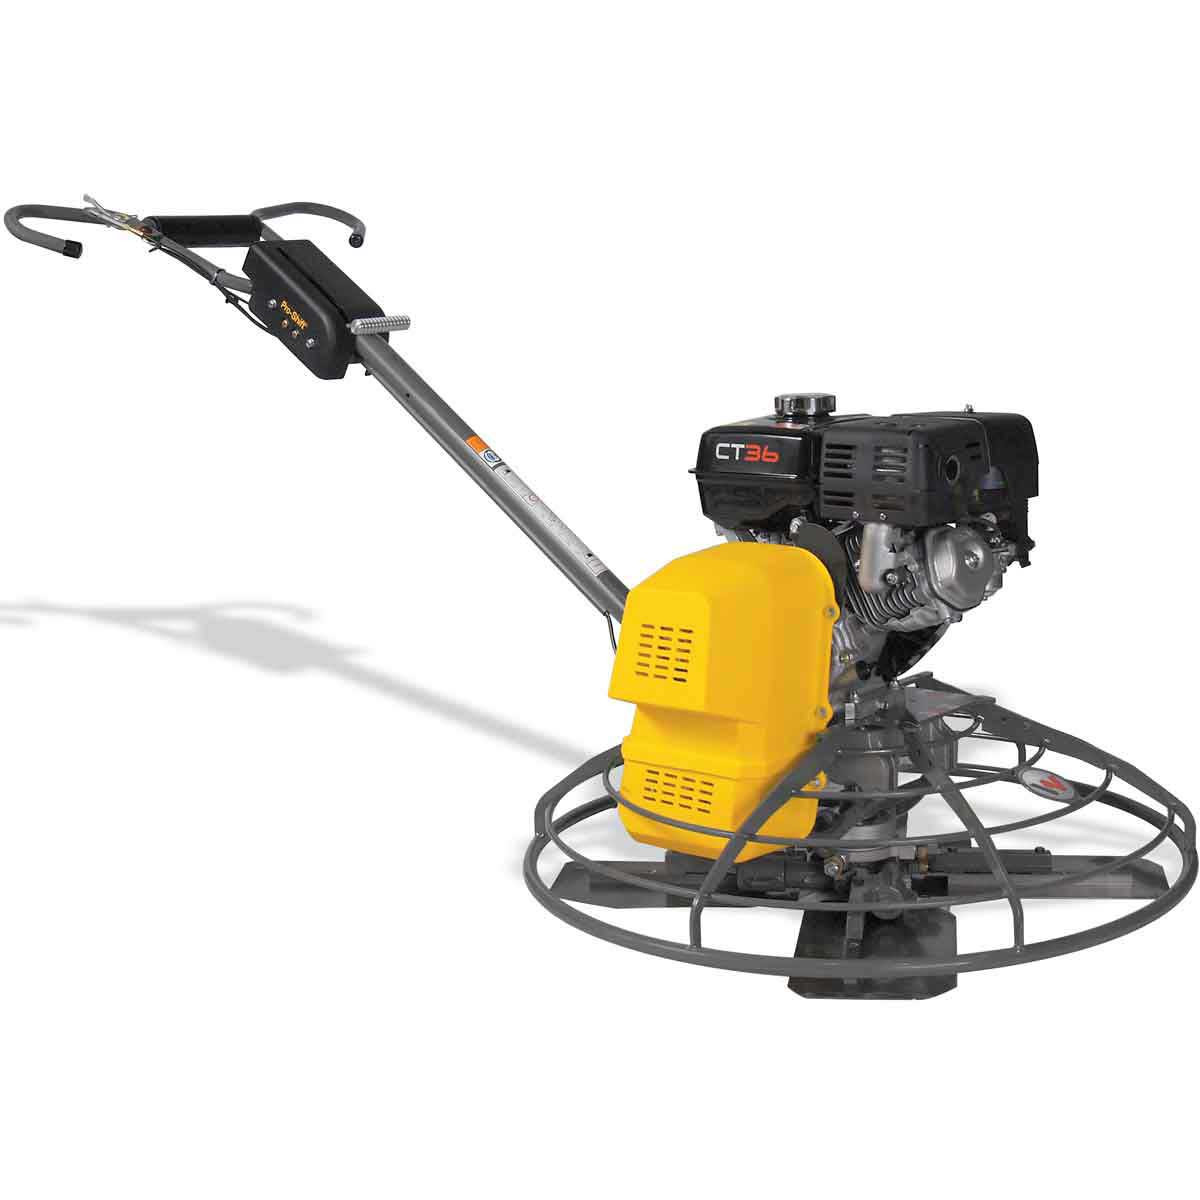 Wacker neuson concrete power trowel